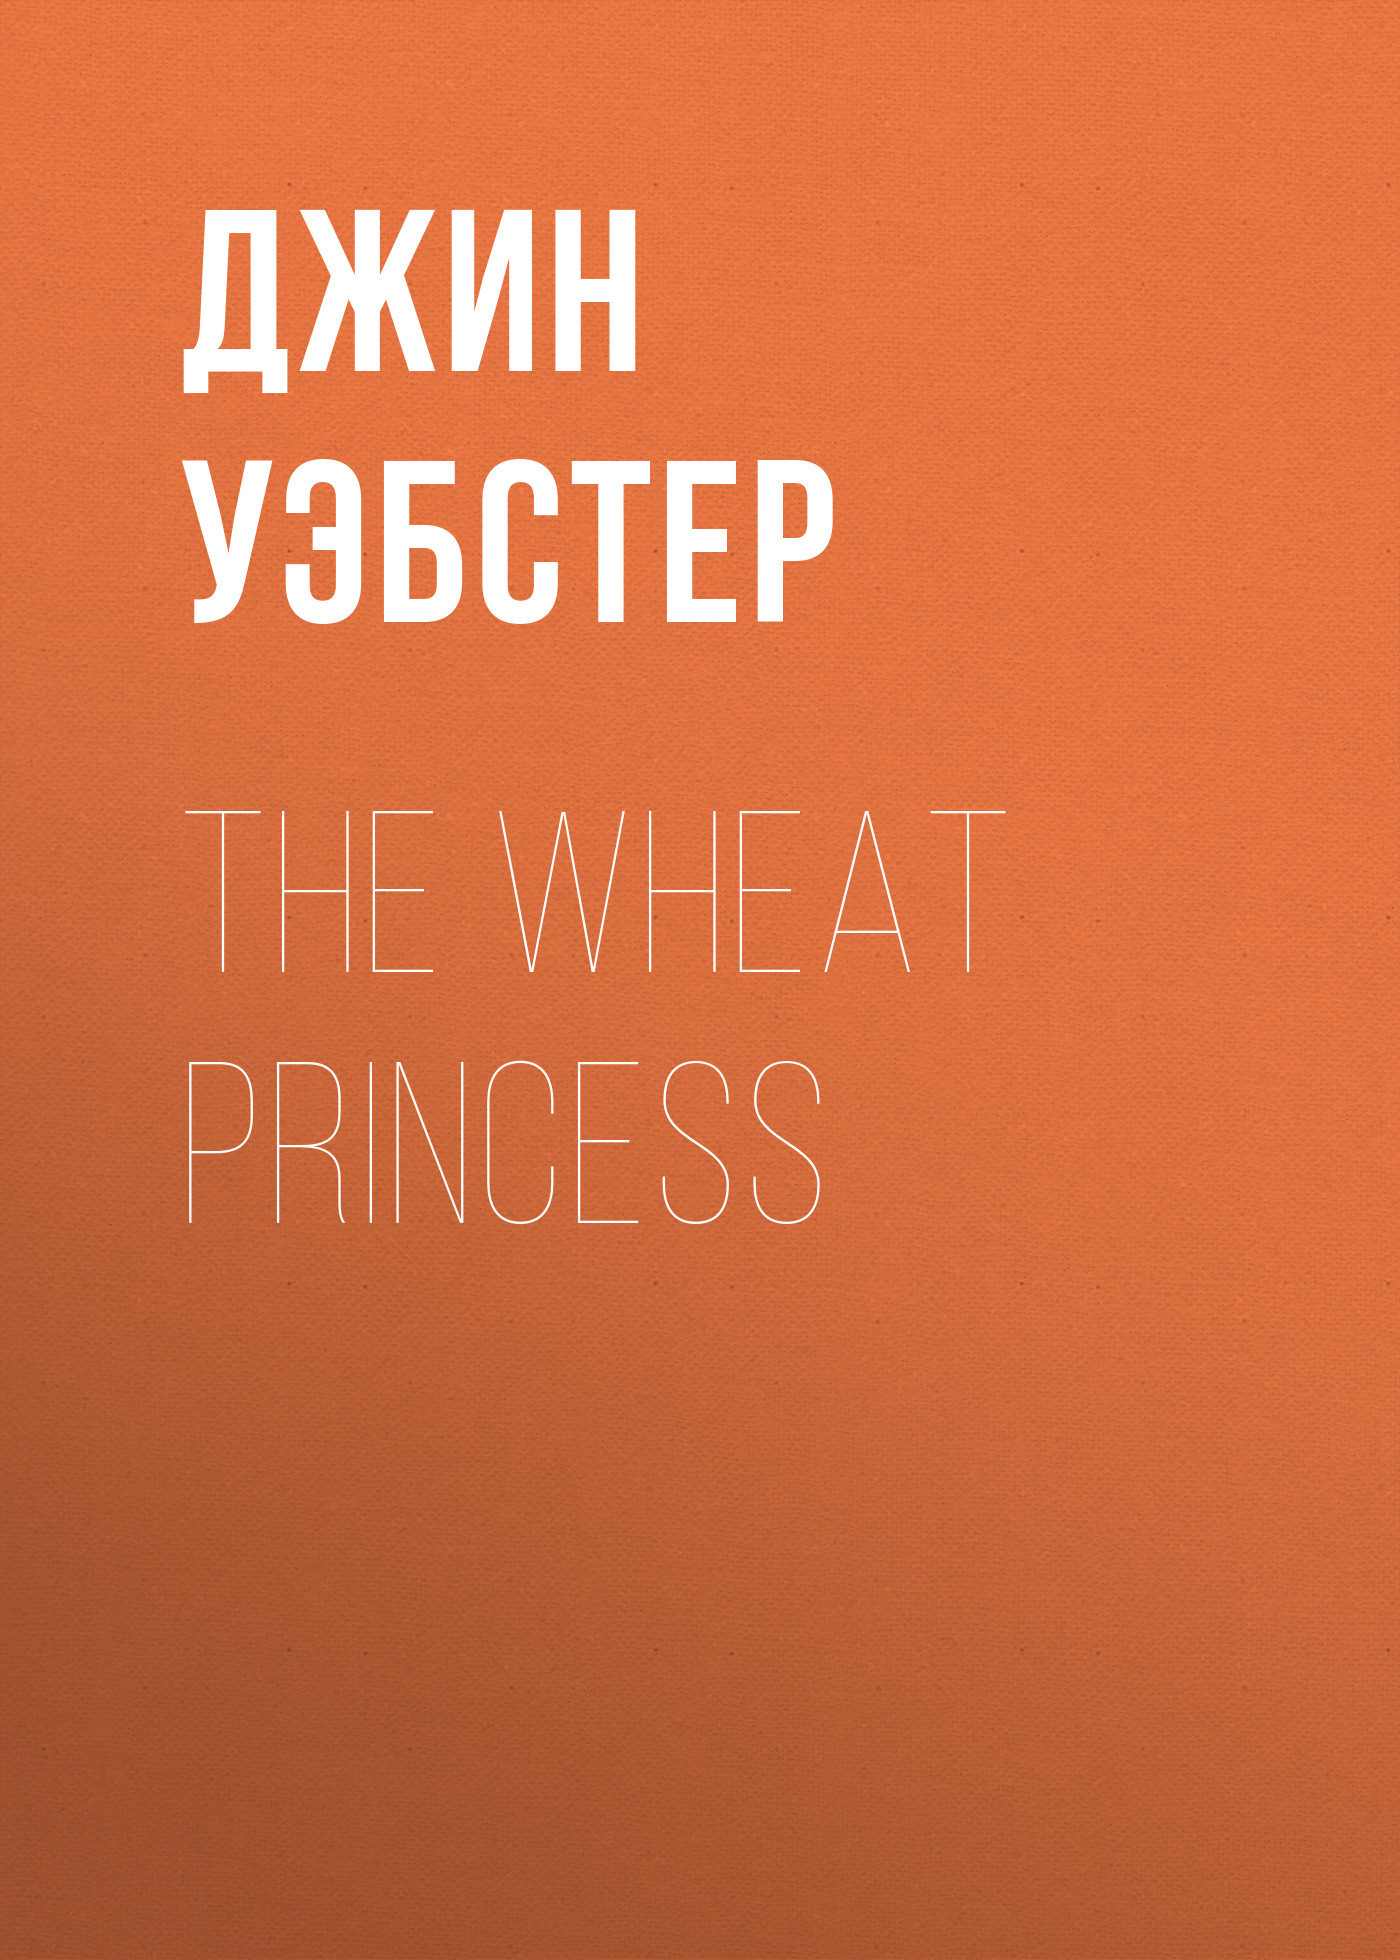 Джин Уэбстер The Wheat Princess уэбстер джин патти в колледже повесть